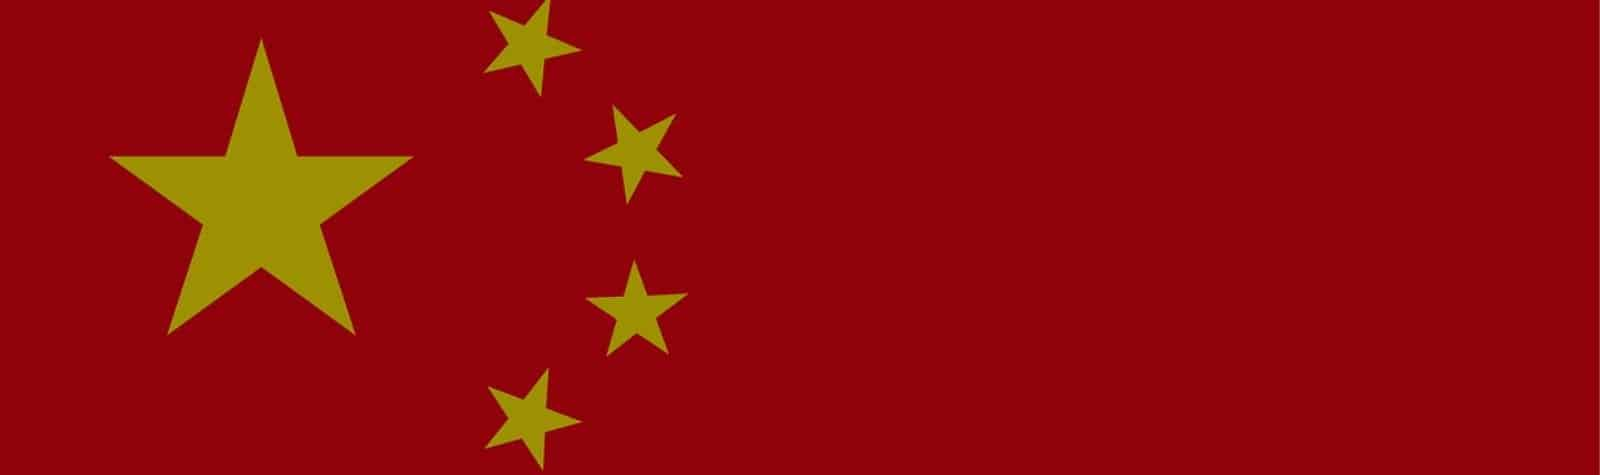 China Introduces New Regulations For Online Teaching